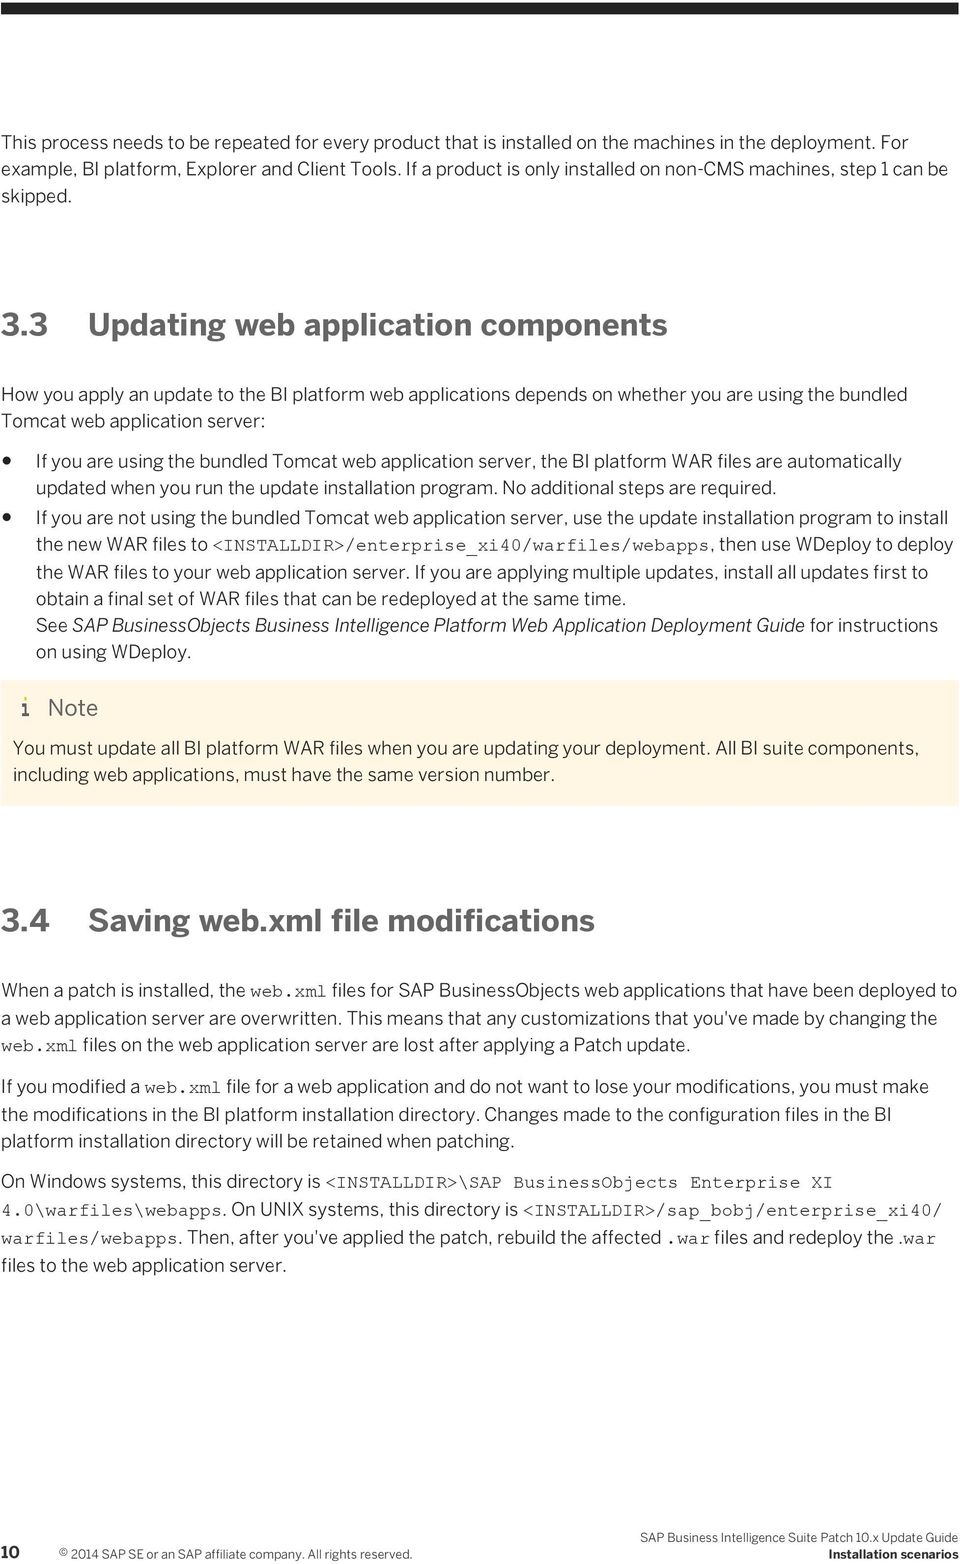 3 Updating web application components How you apply an update to the BI platform web applications depends on whether you are using the bundled Tomcat web application server: If you are using the